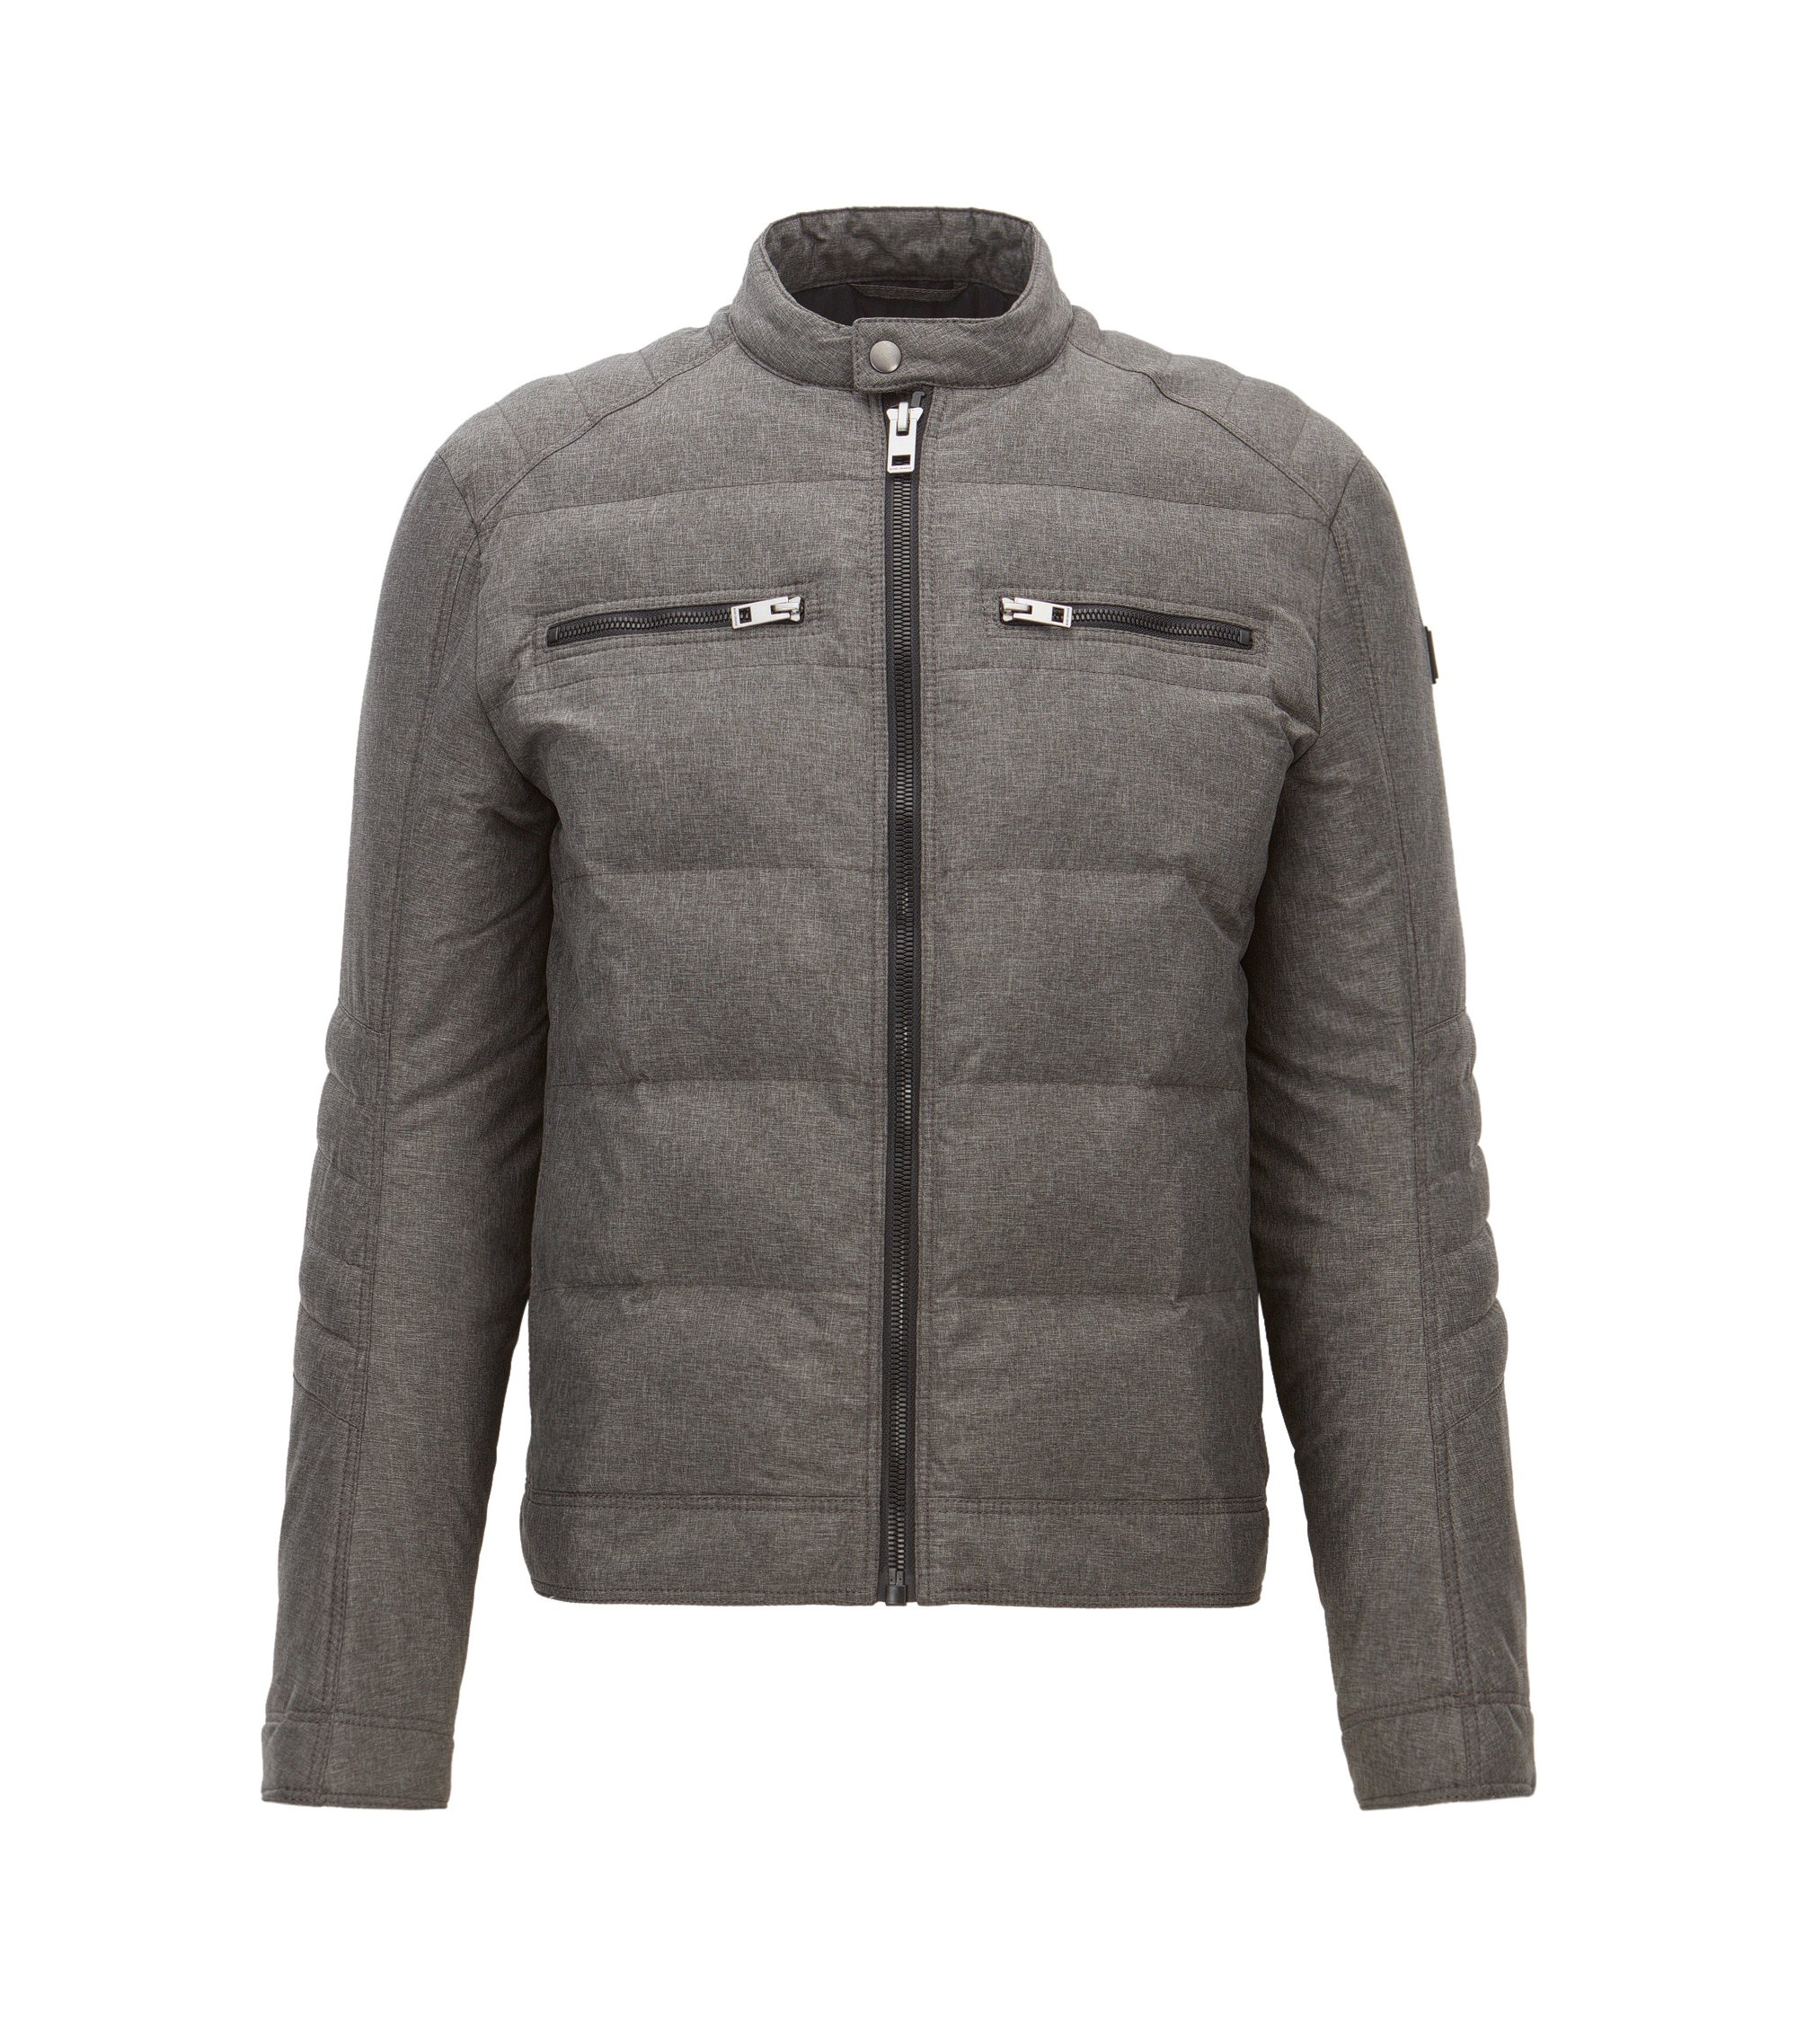 Veste Slim Fit en tissu technique, Anthracite